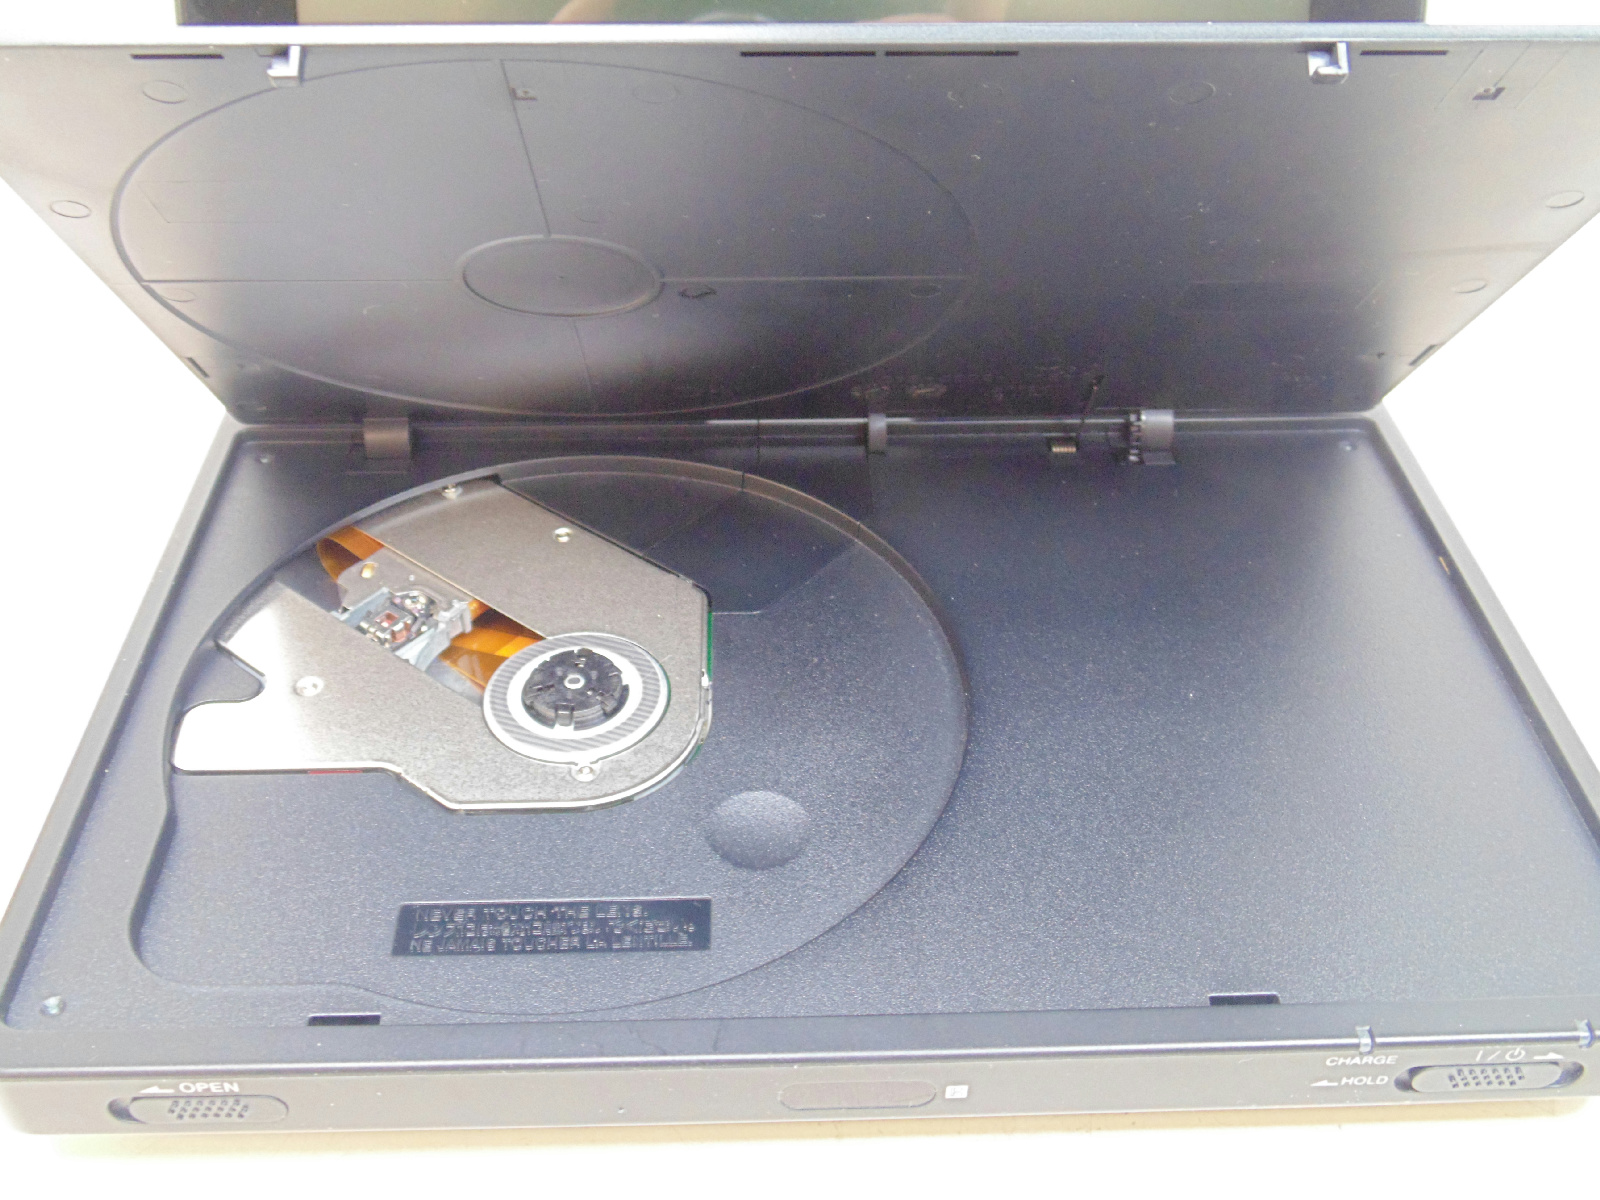 Sony Portable CD DVD Player DVP FX810 8